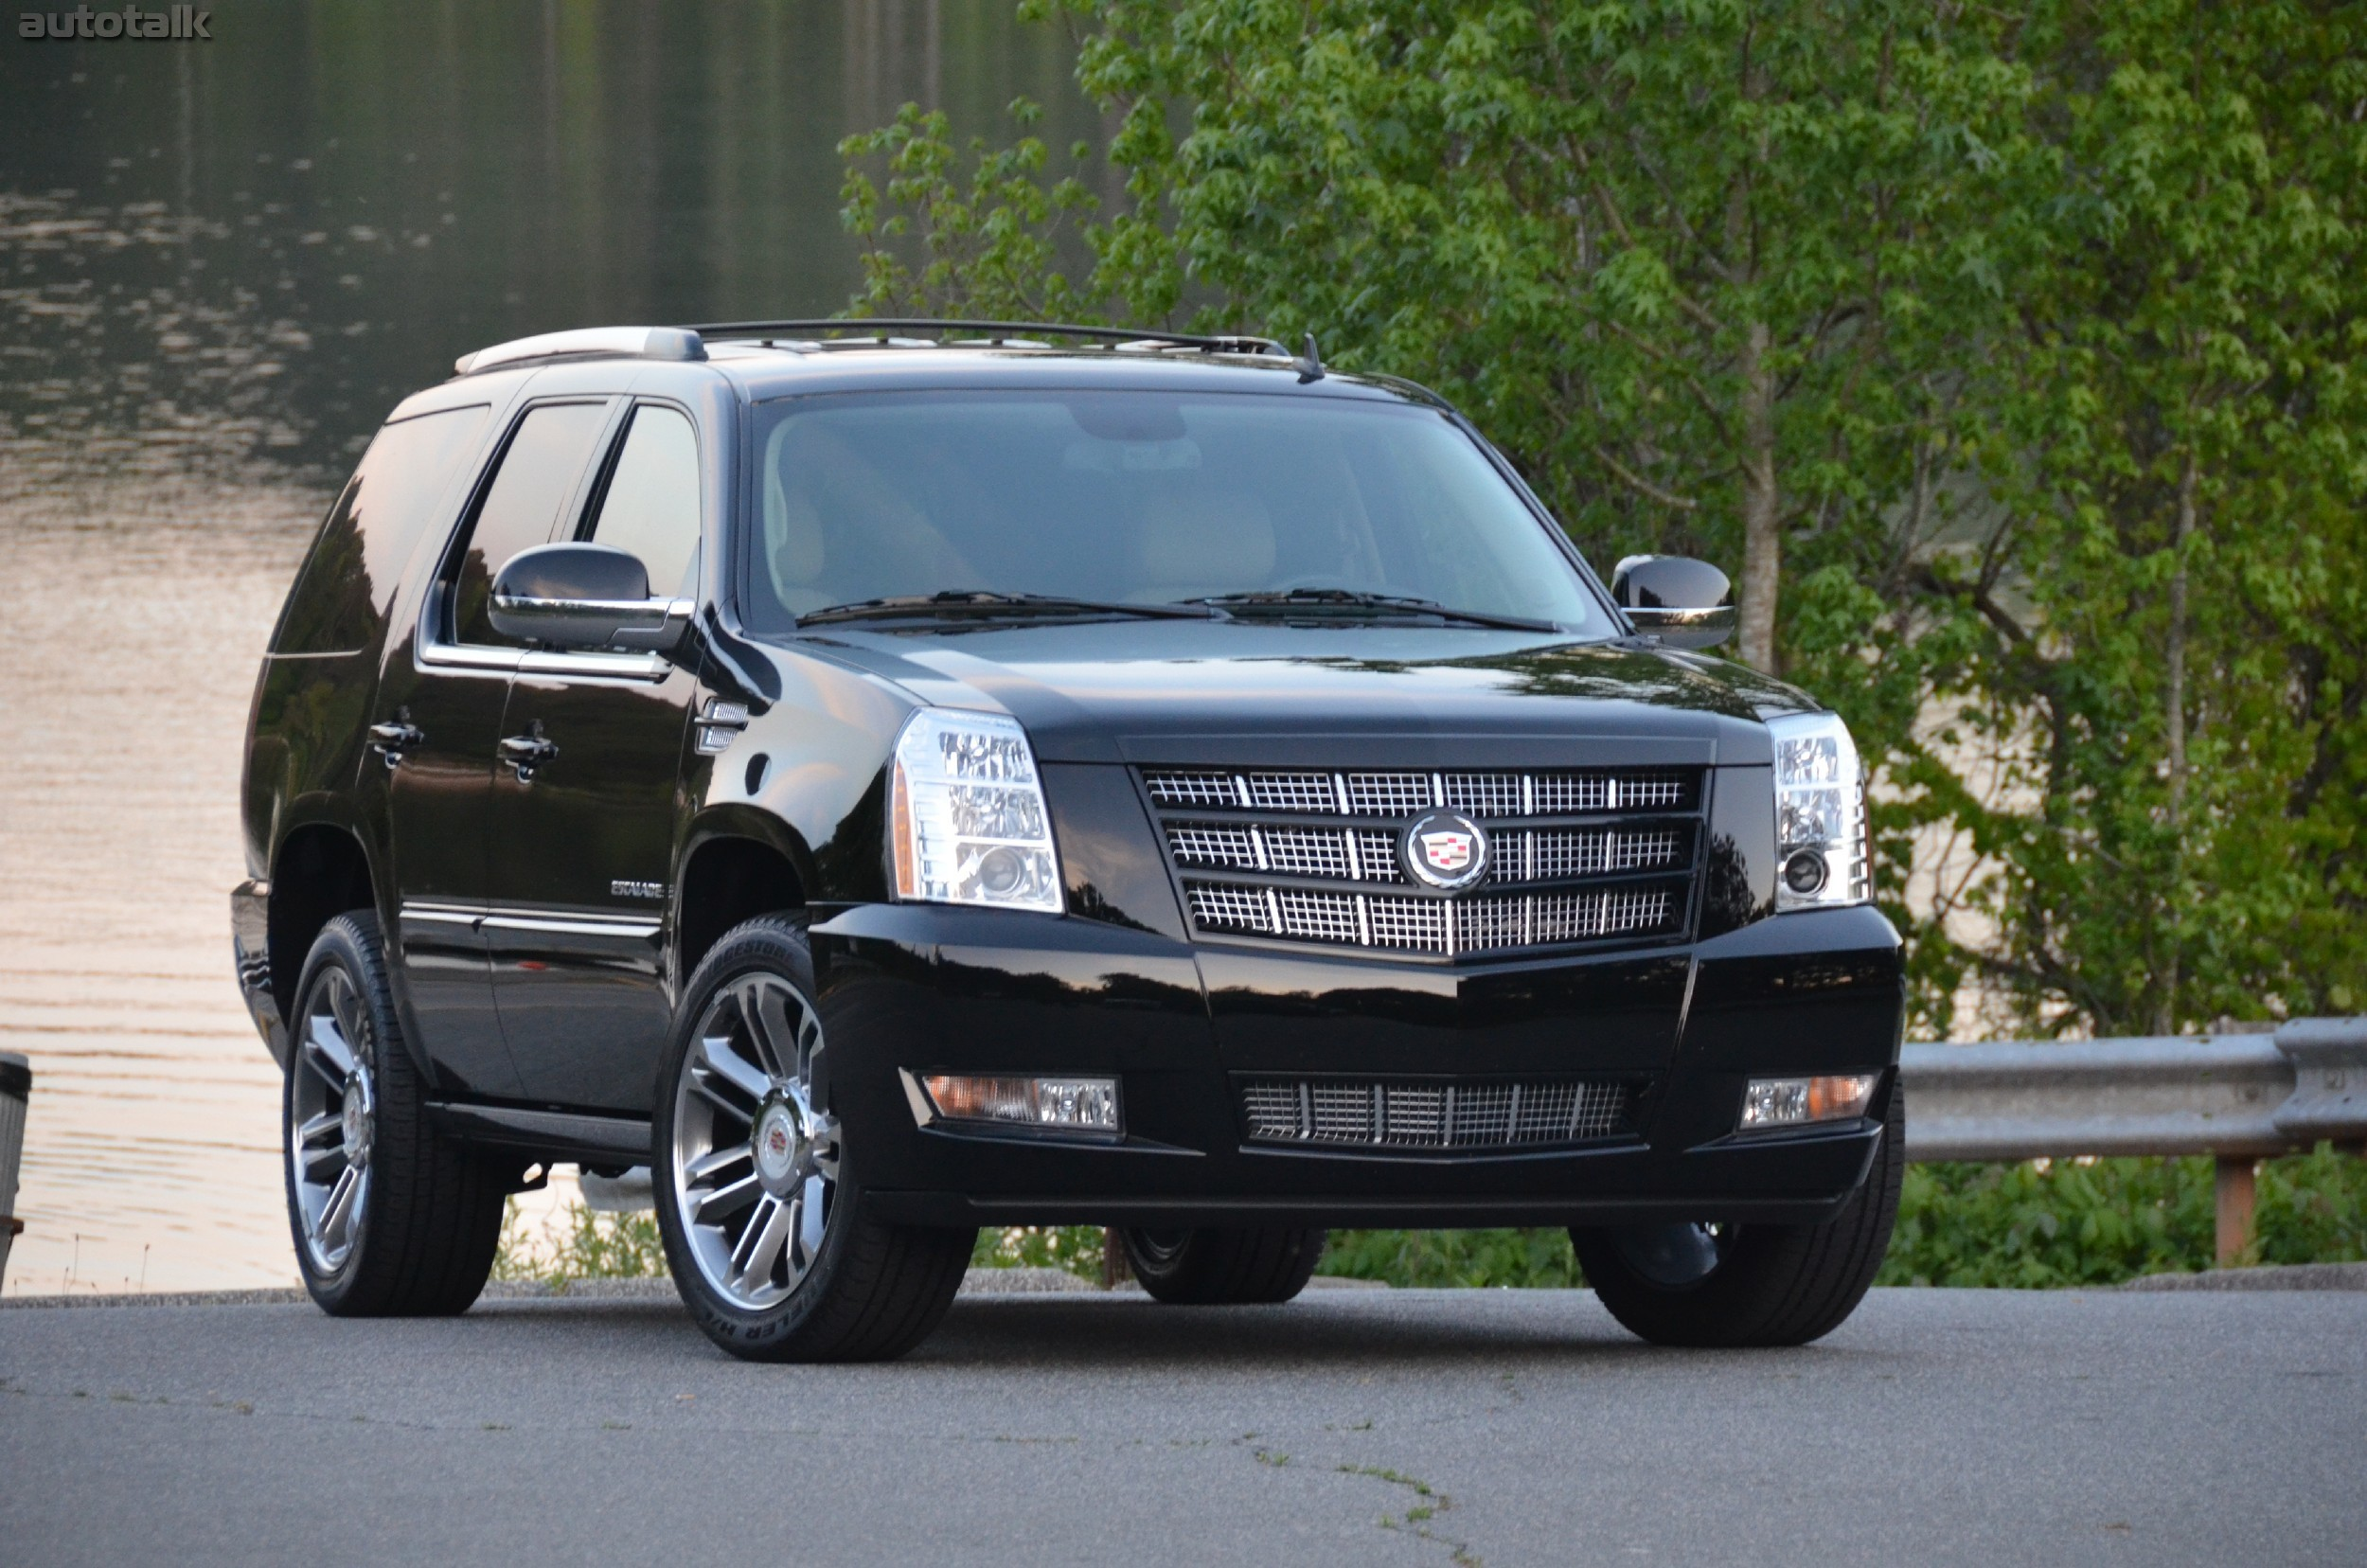 2012 cadillac escalade review autotalk. Black Bedroom Furniture Sets. Home Design Ideas